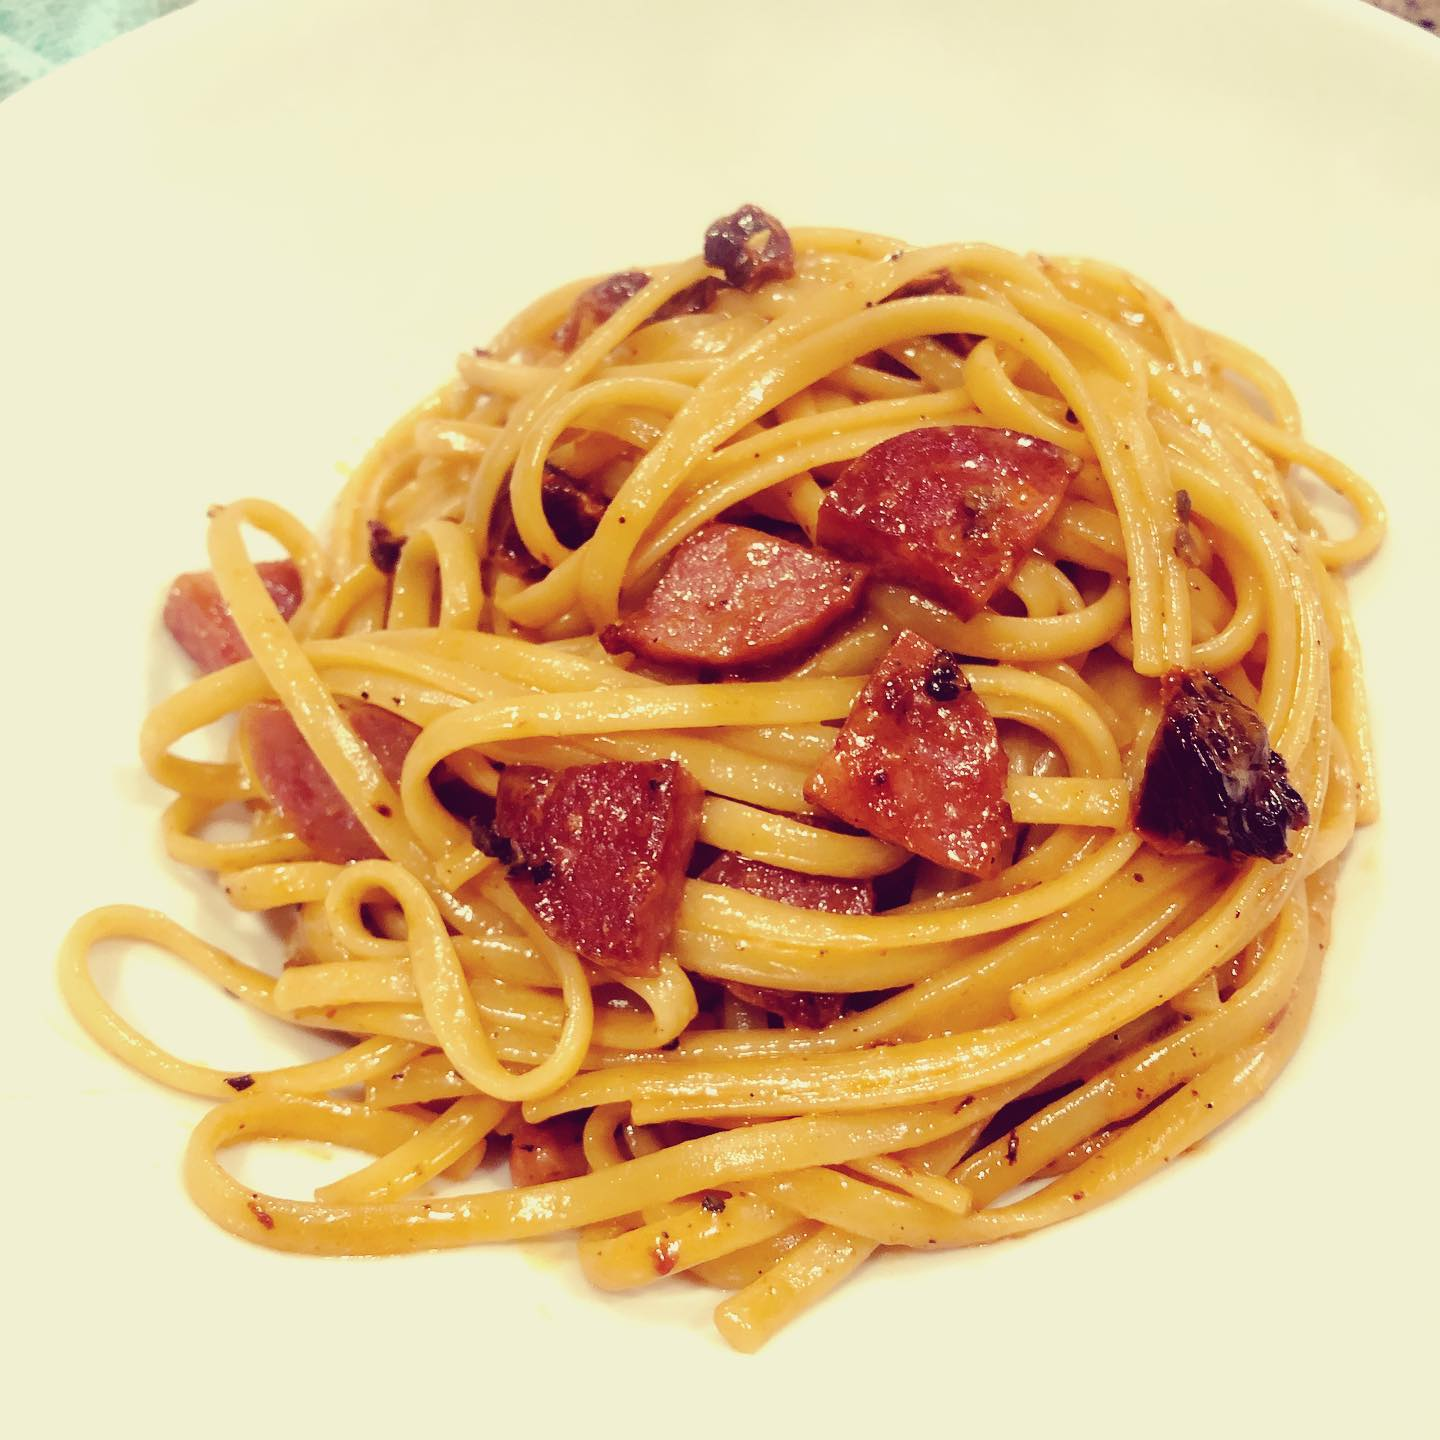 Quarantine meal 6: linguine with a sausage and sun-dried tomato cream sauce